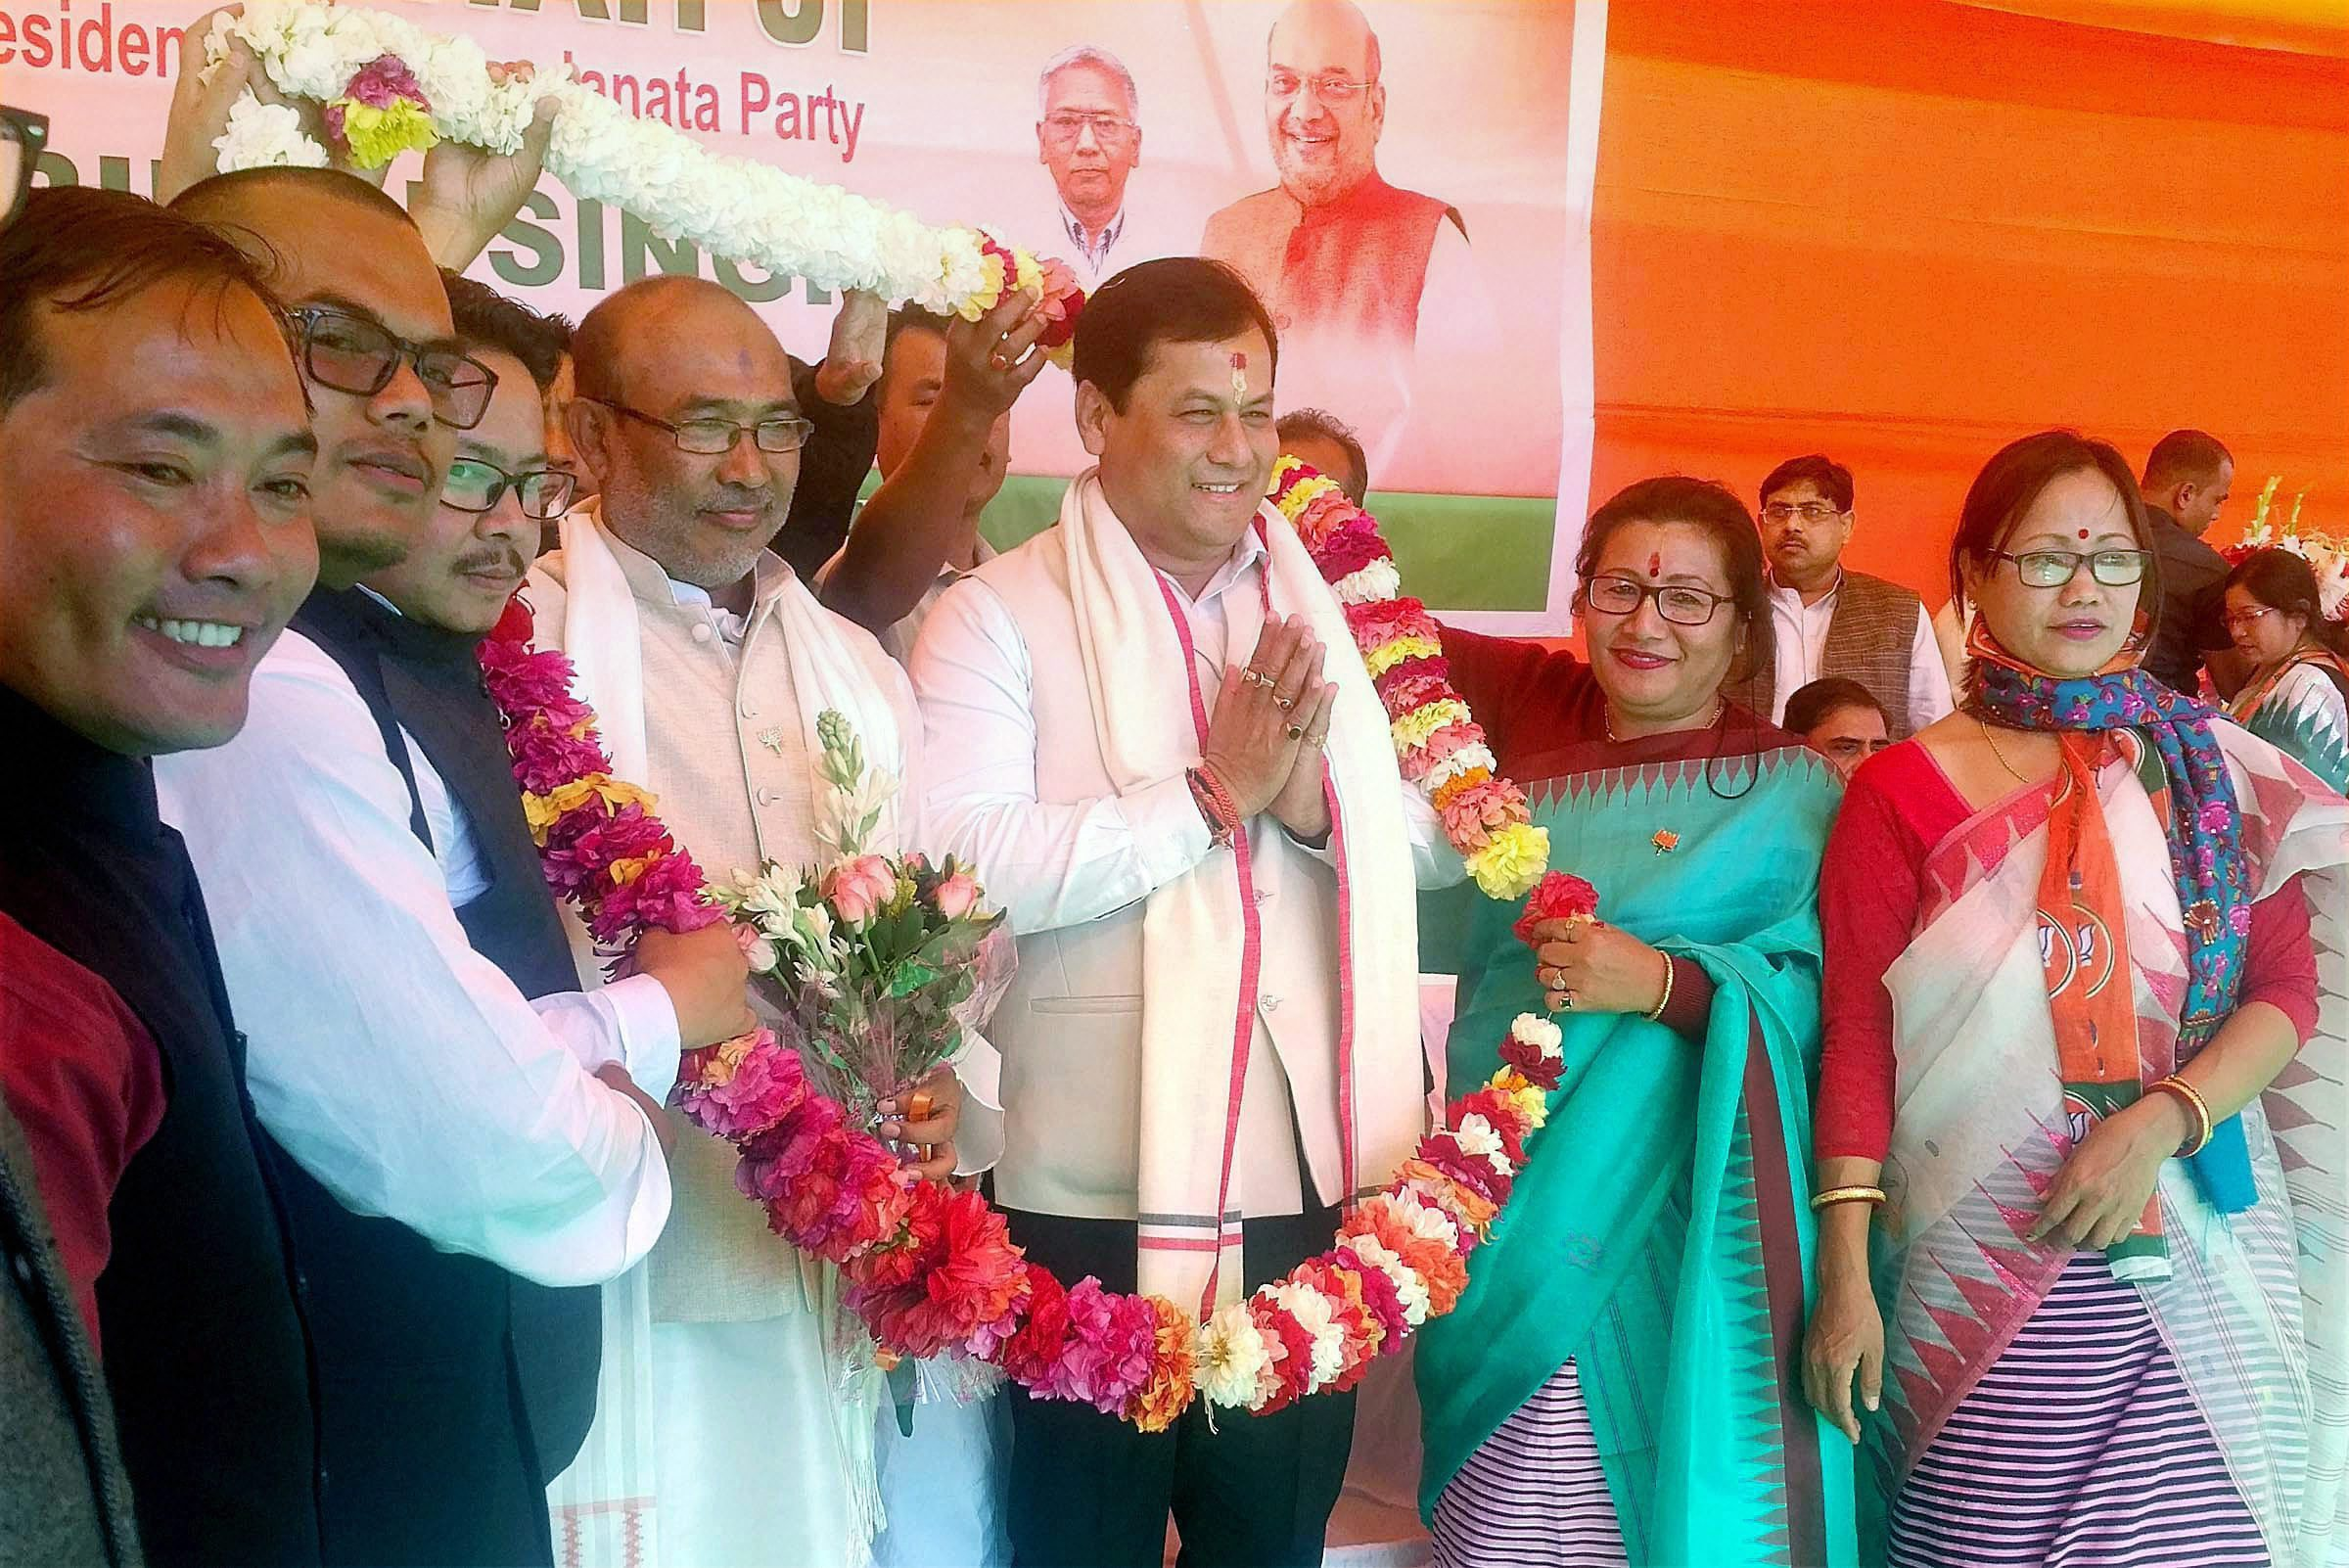 Newly sworn-in Manipur chief minister Nongthombam Biren Singh with Assam chief minister Sarbananda Sonowal being felicitated in Imphal on Wednesday. Credit: PTI